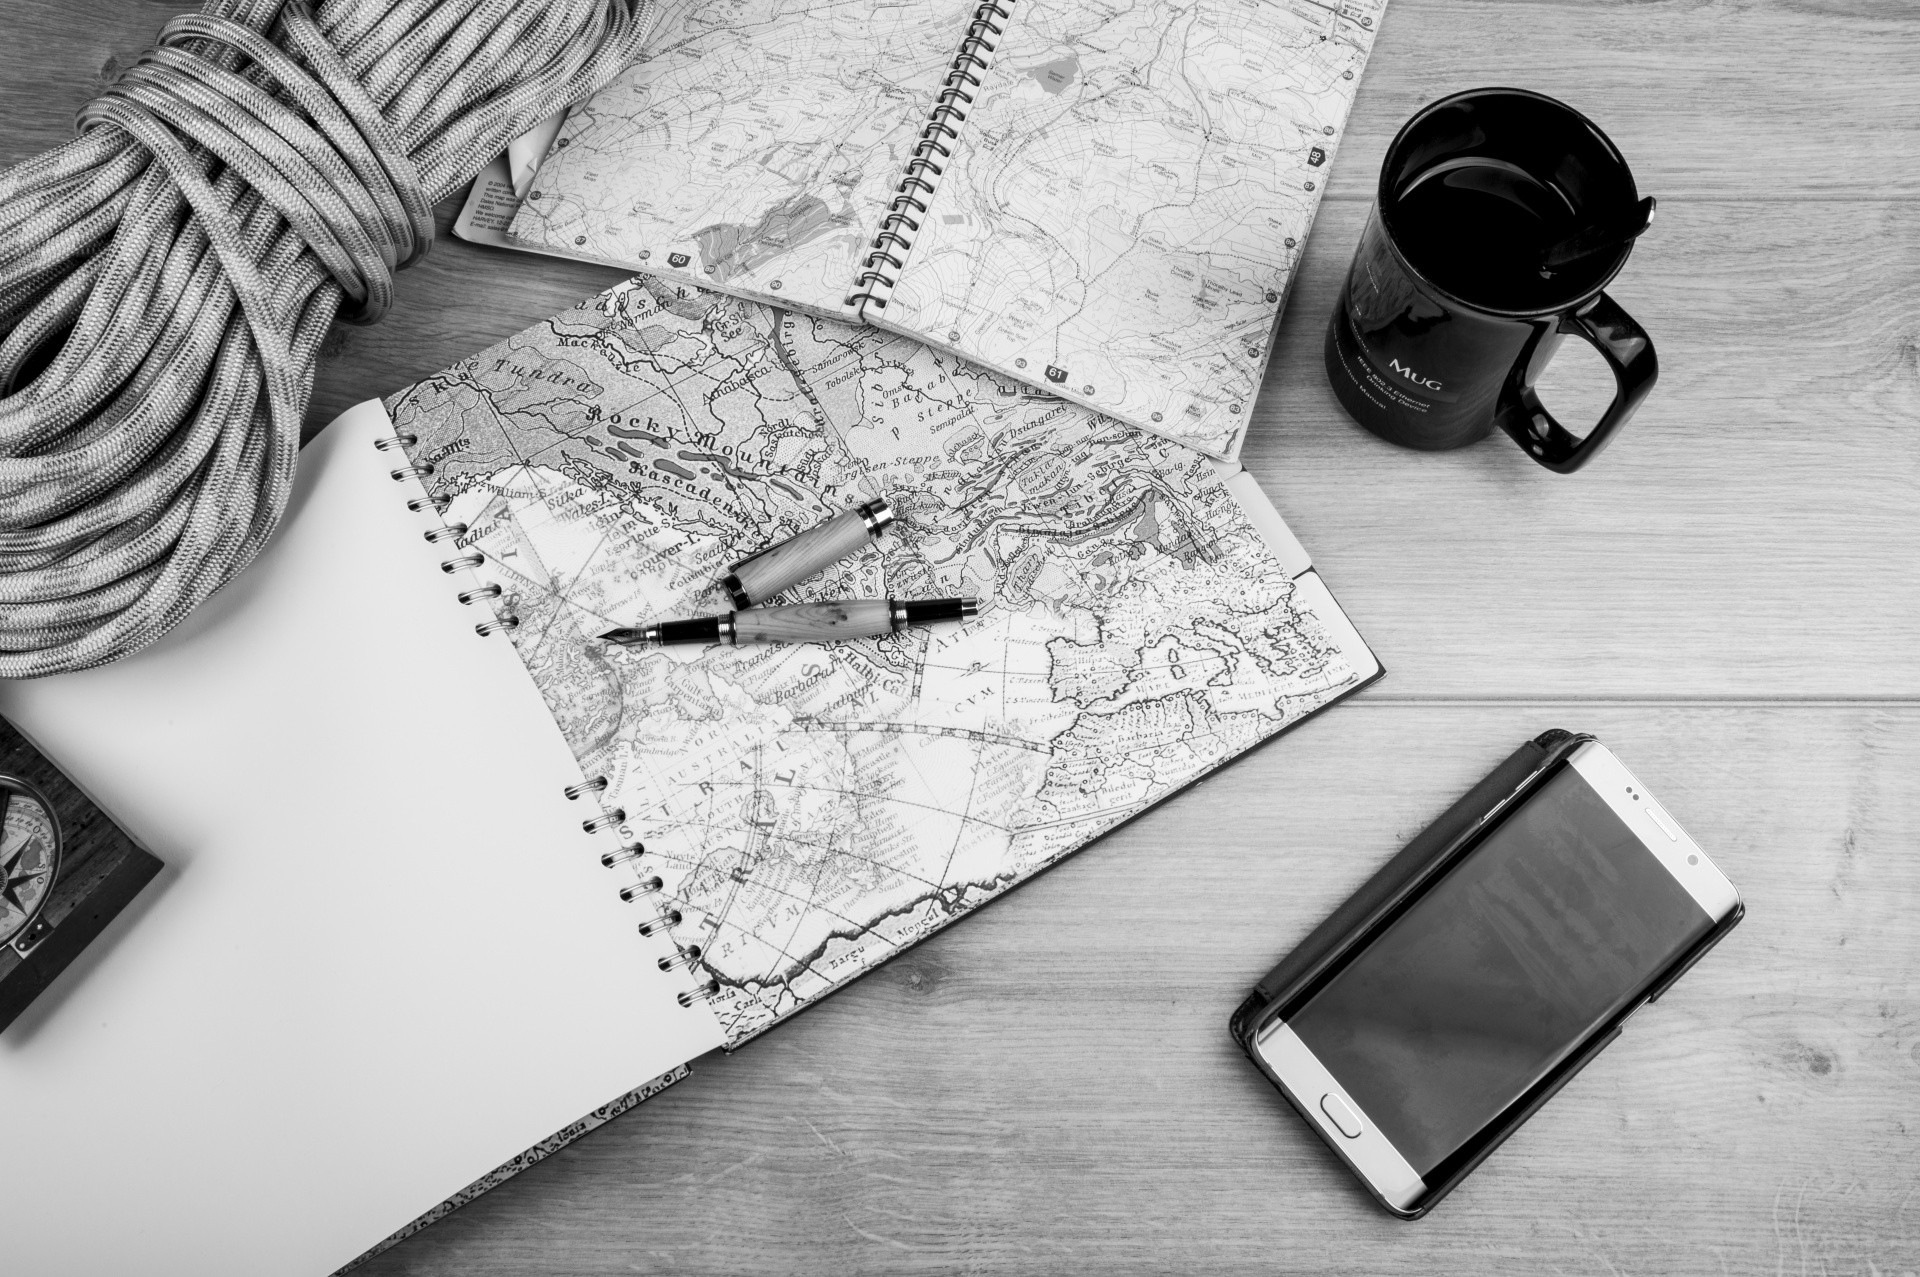 Vintage Map Iphone Wallpaper Travel Background 183 ① Download Free Beautiful Full Hd